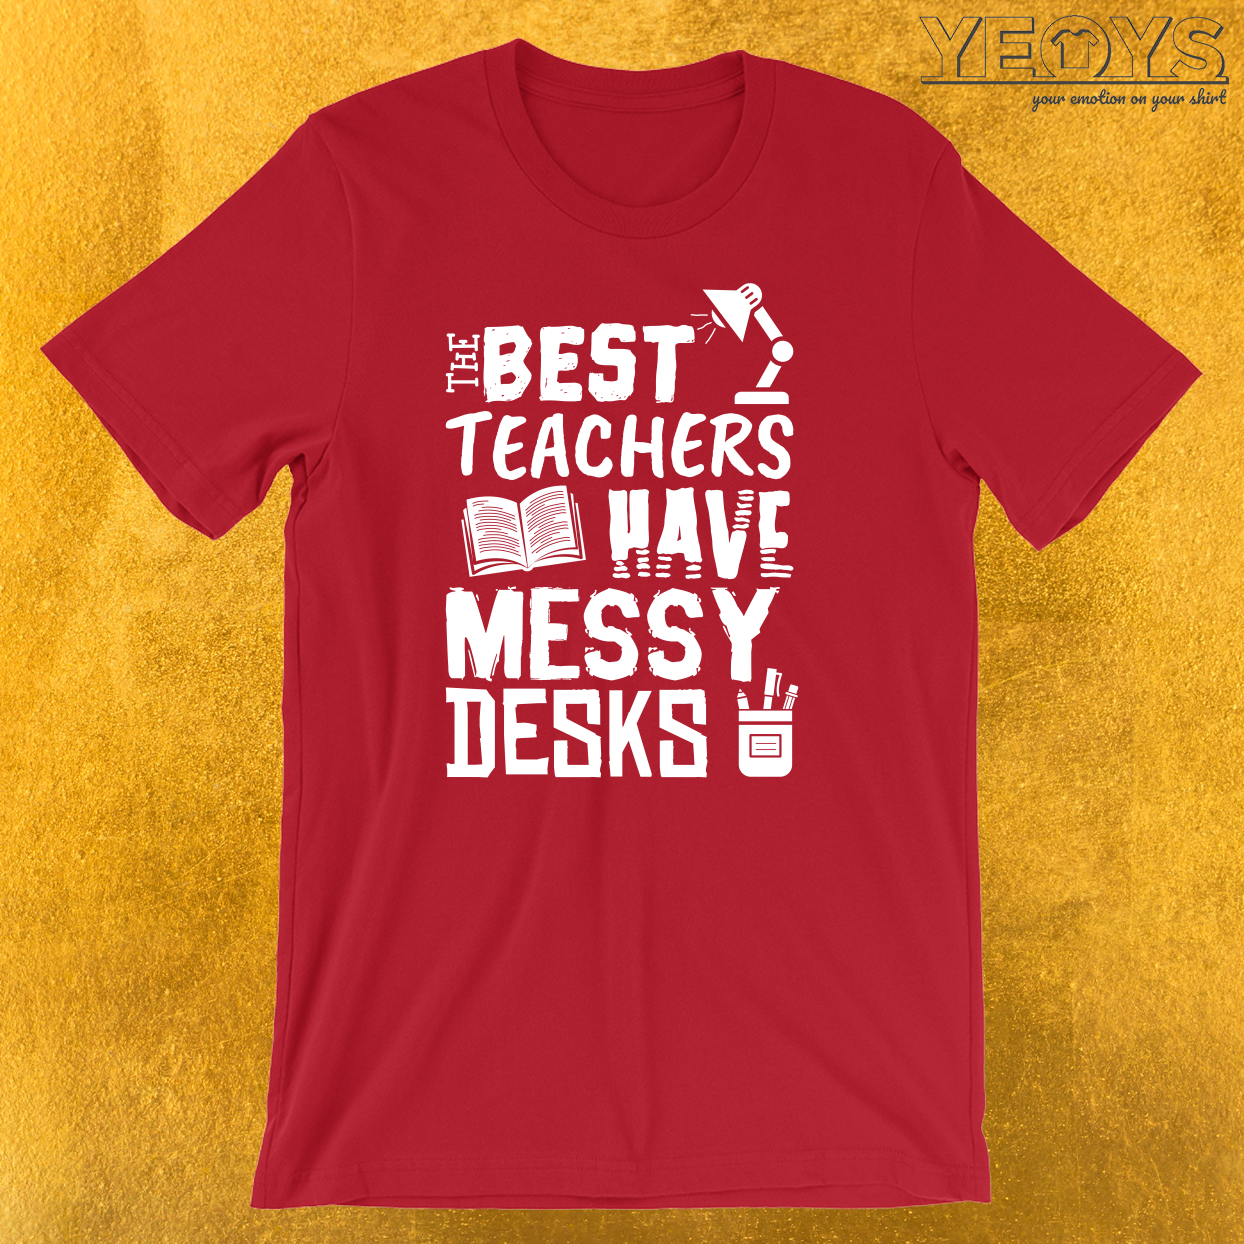 The Best Teachers Have Messy Desks T-Shirt